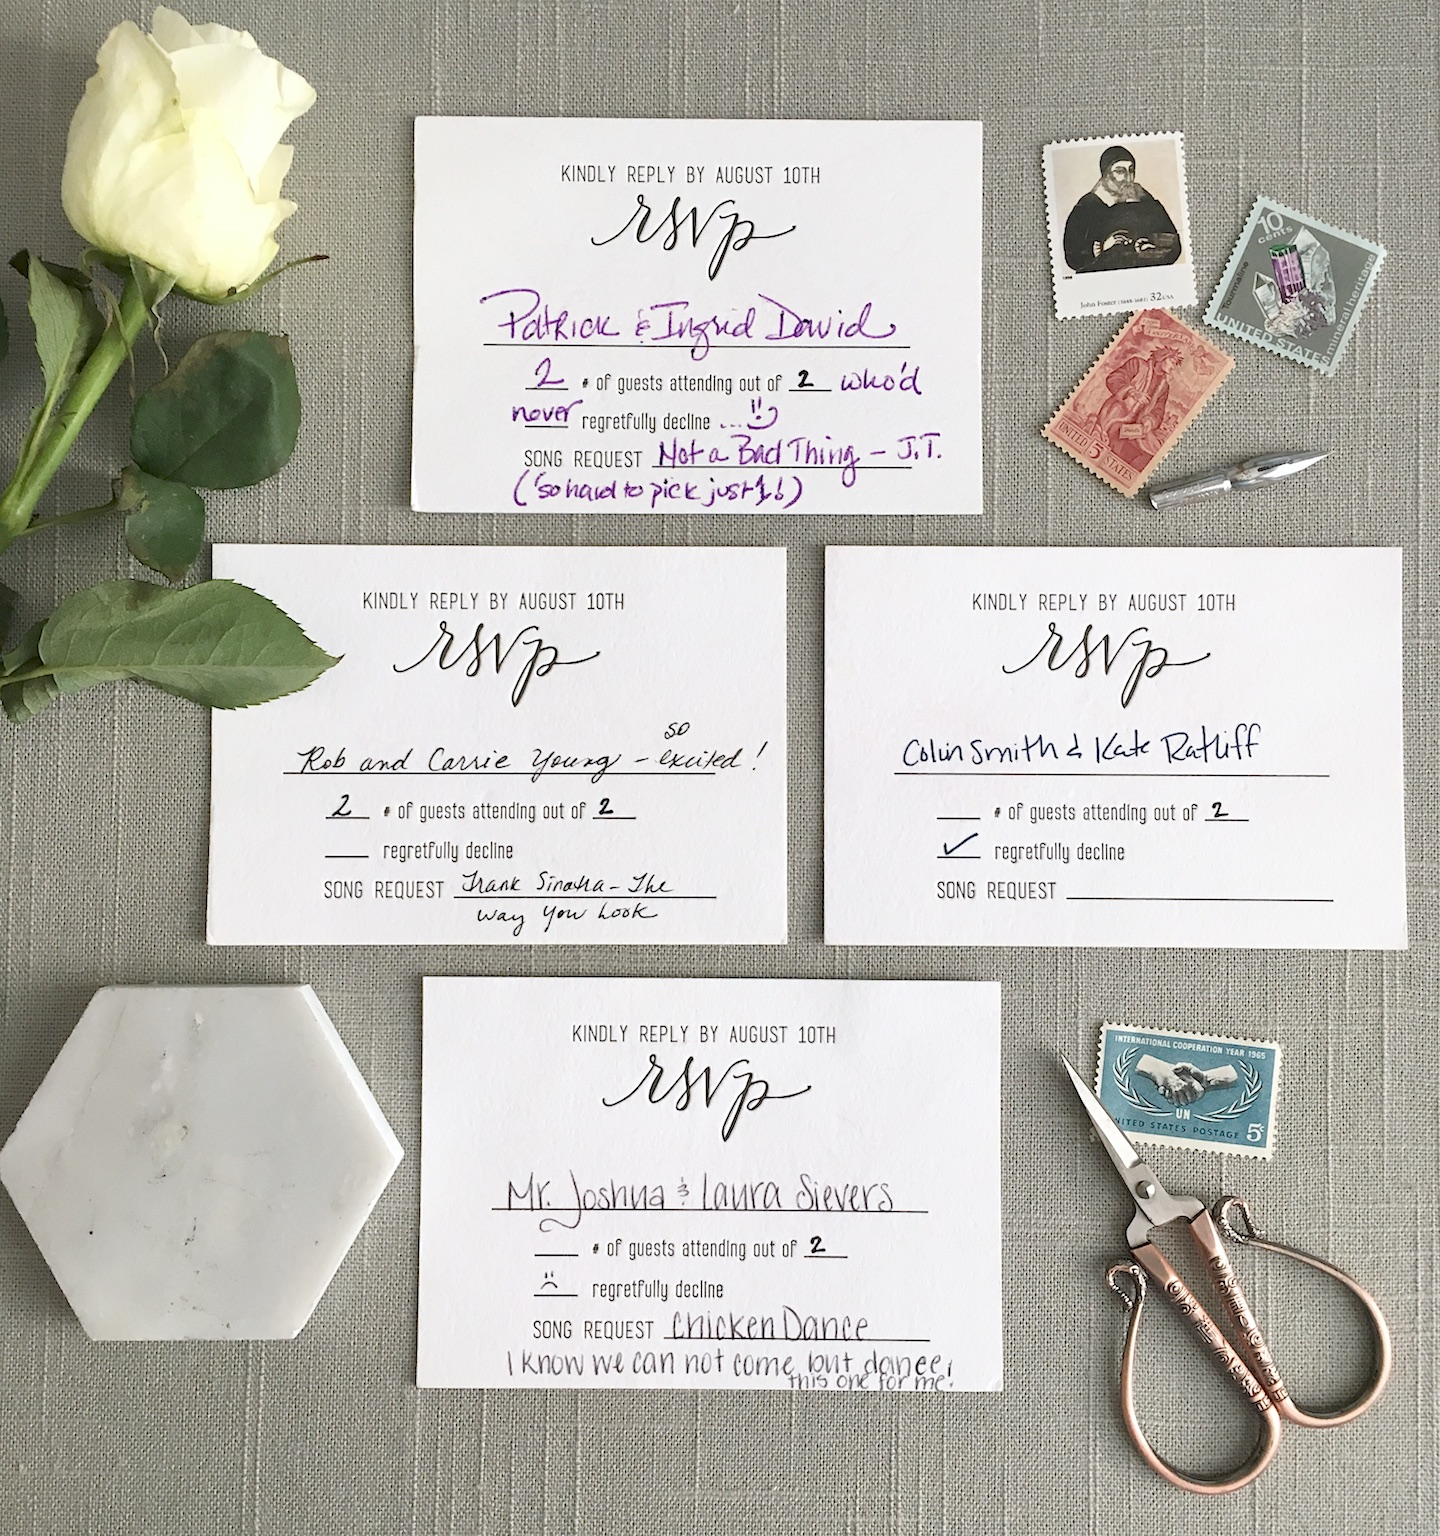 I love that I kept all of my RSVP cards! They are such a fun keepsake from our wedding and I love seeing the little notes that people included when they sent them back!